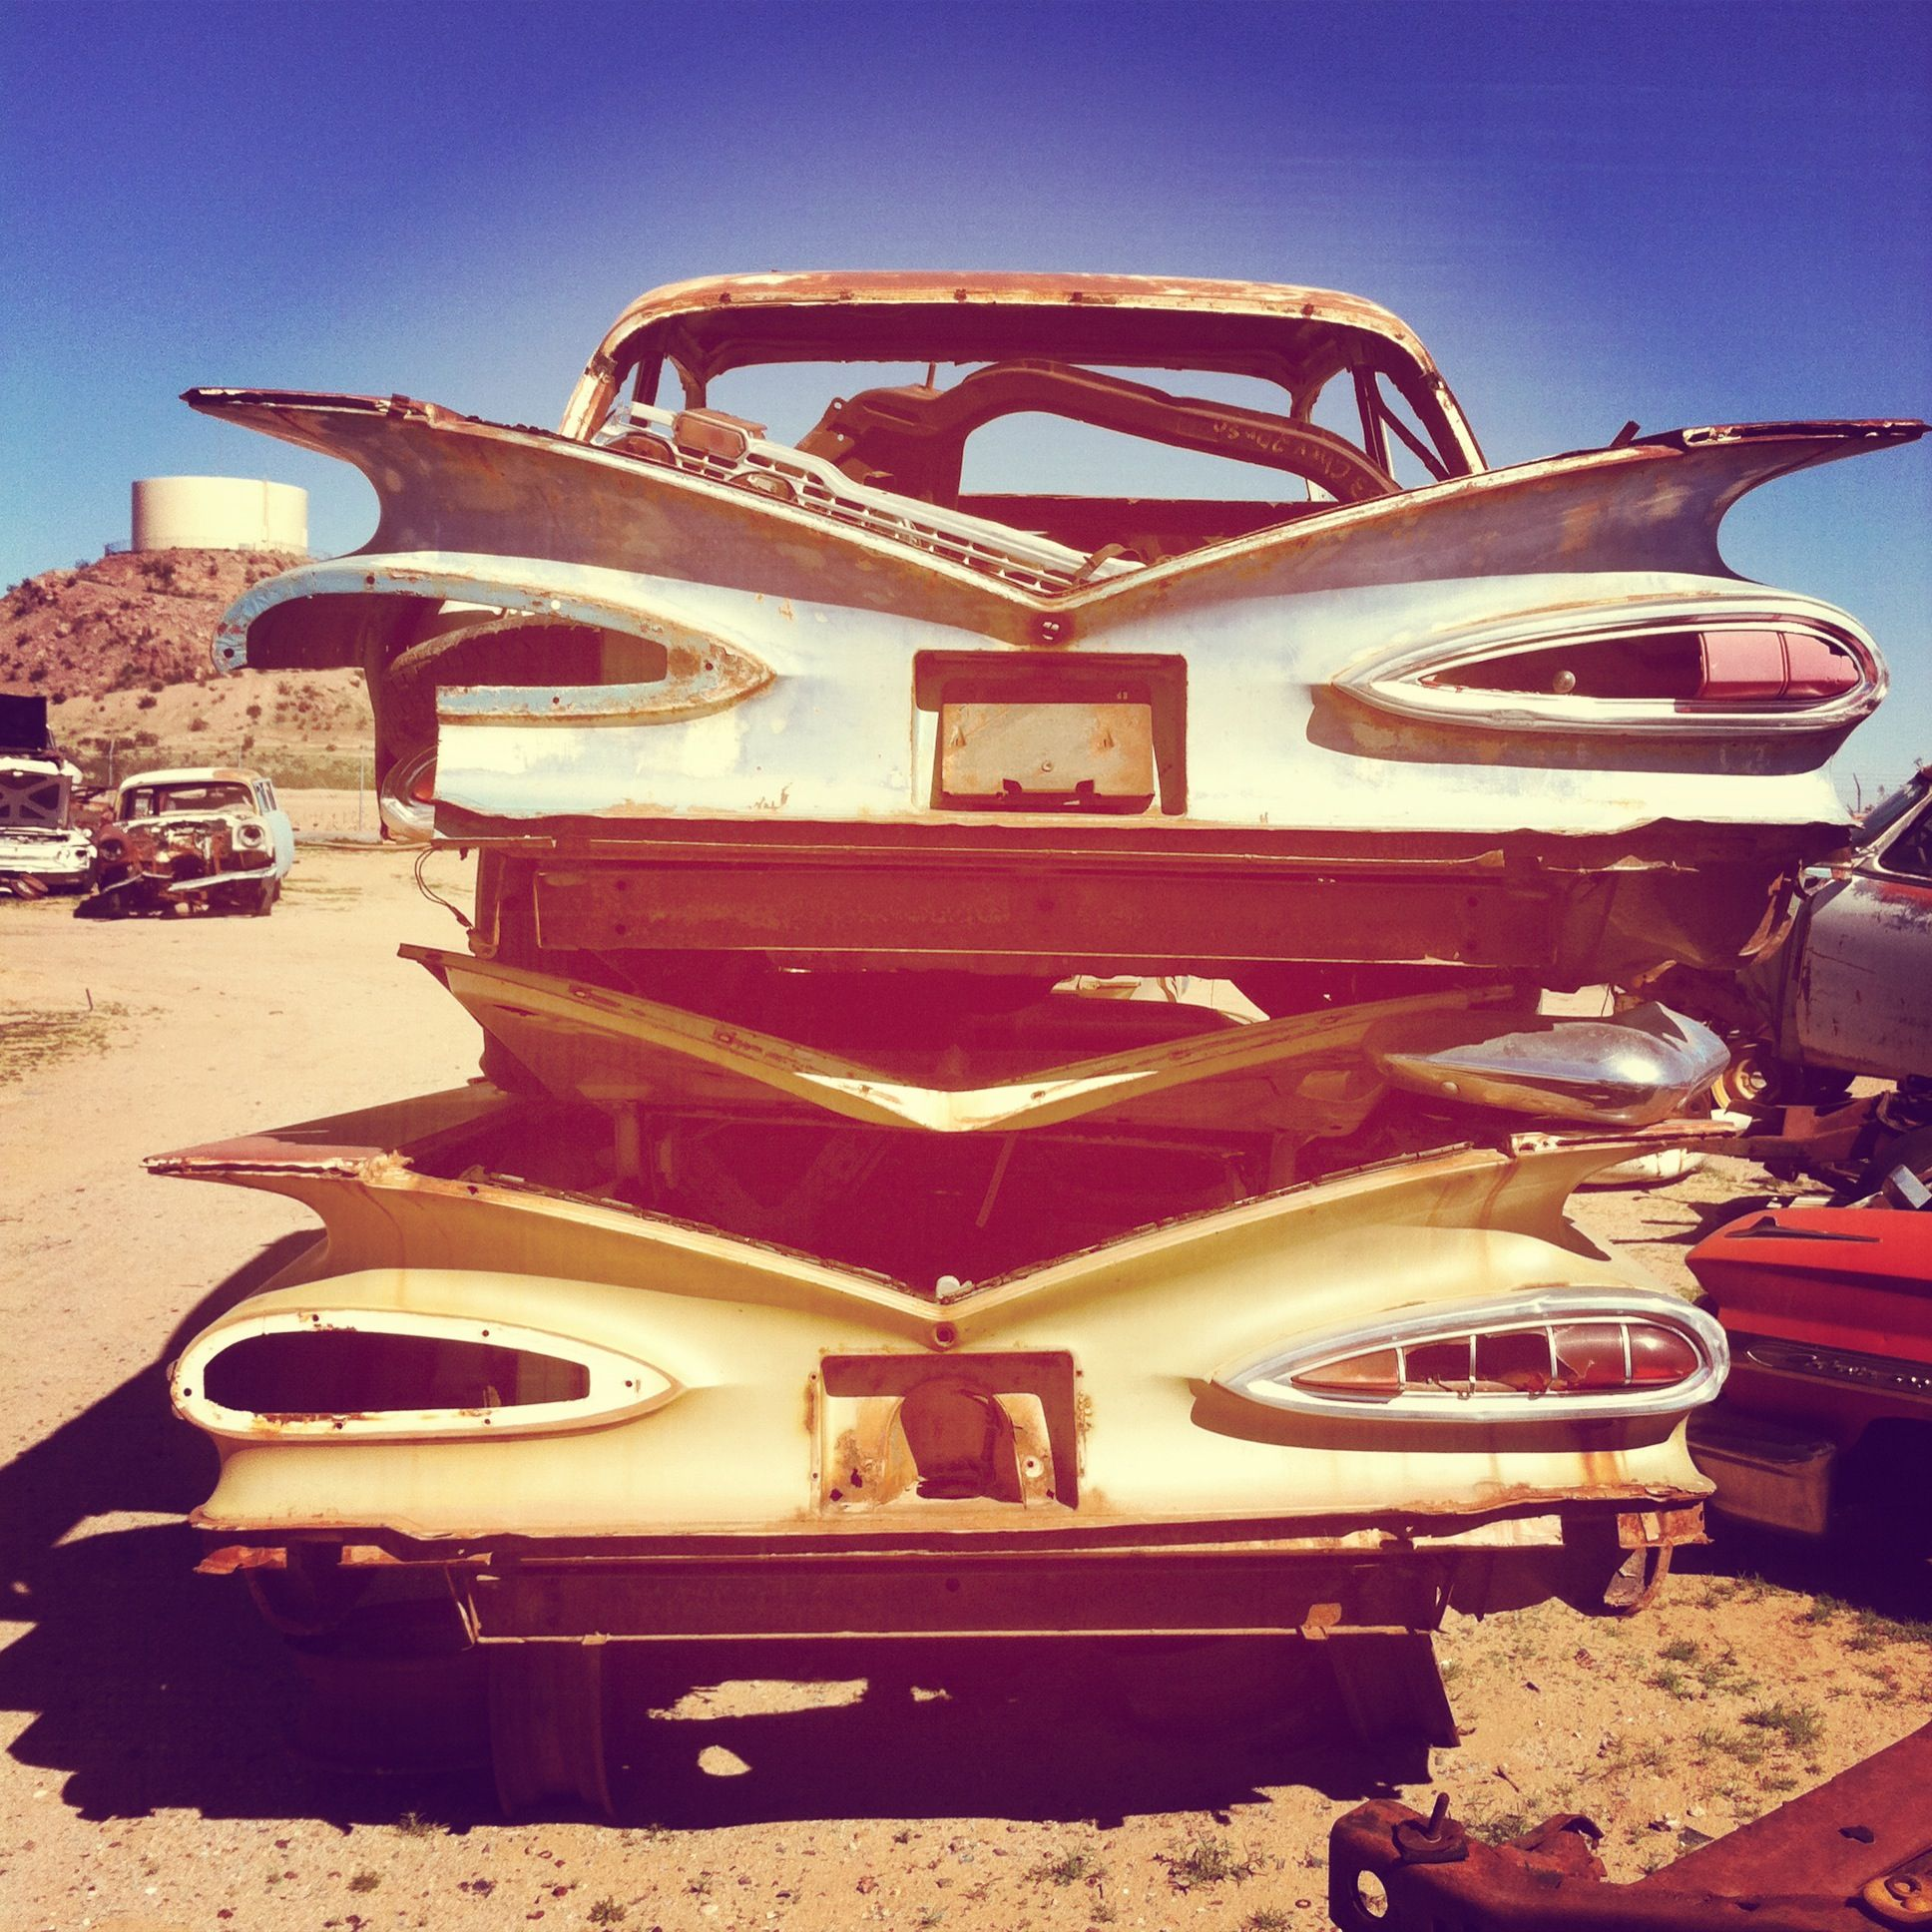 Stacked 1959 Chevy Impalas Classic Car Junk Yard in AZ